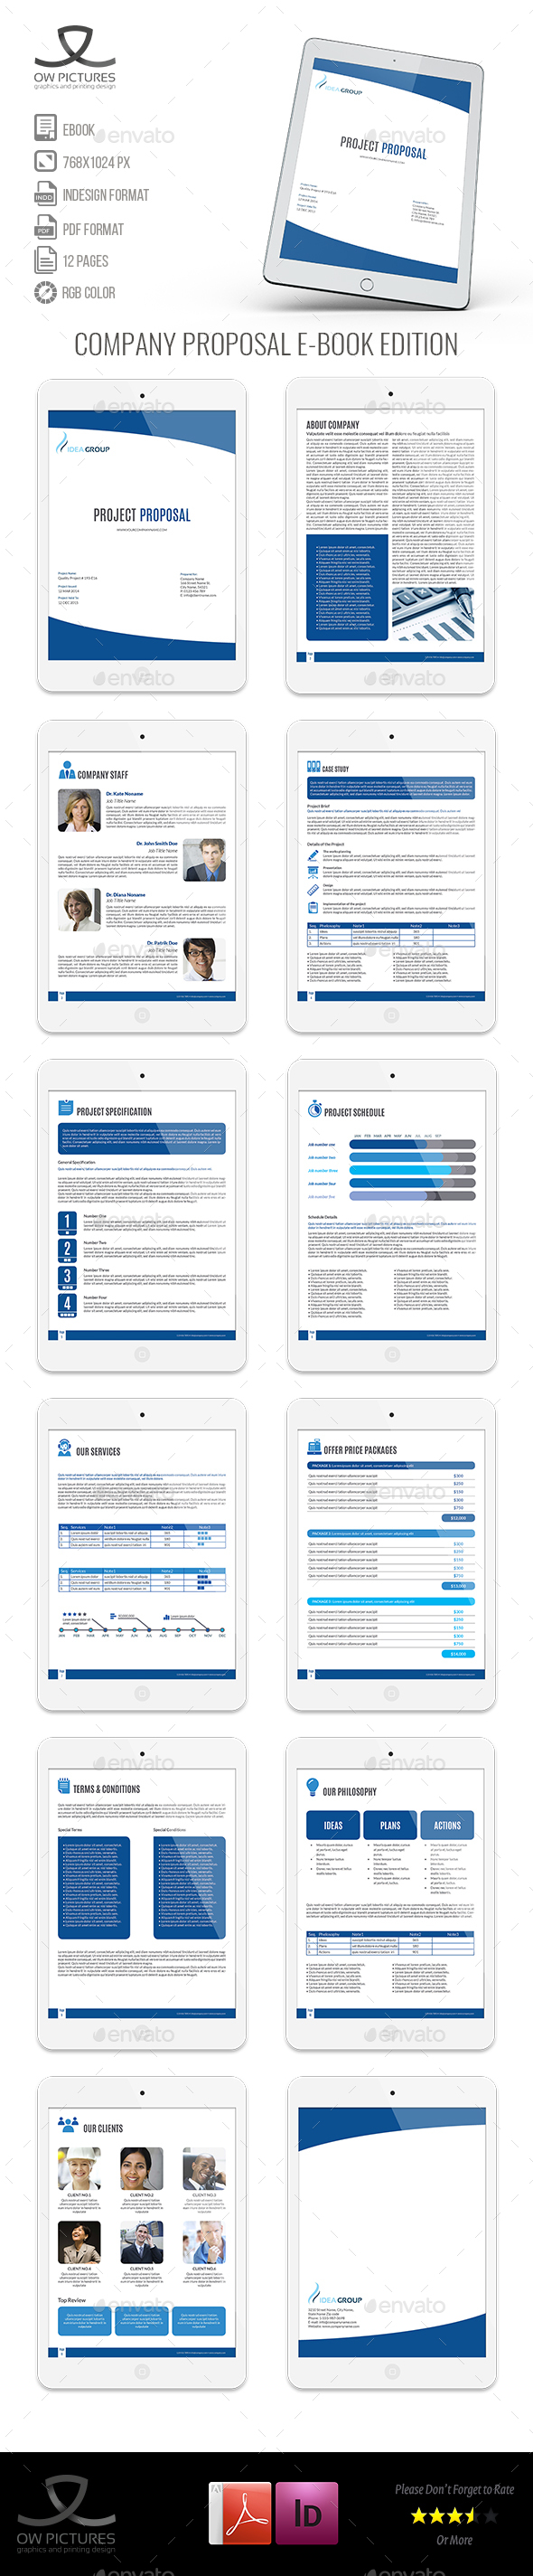 Company Proposal E-Book Template - 12 Pages - ePublishing